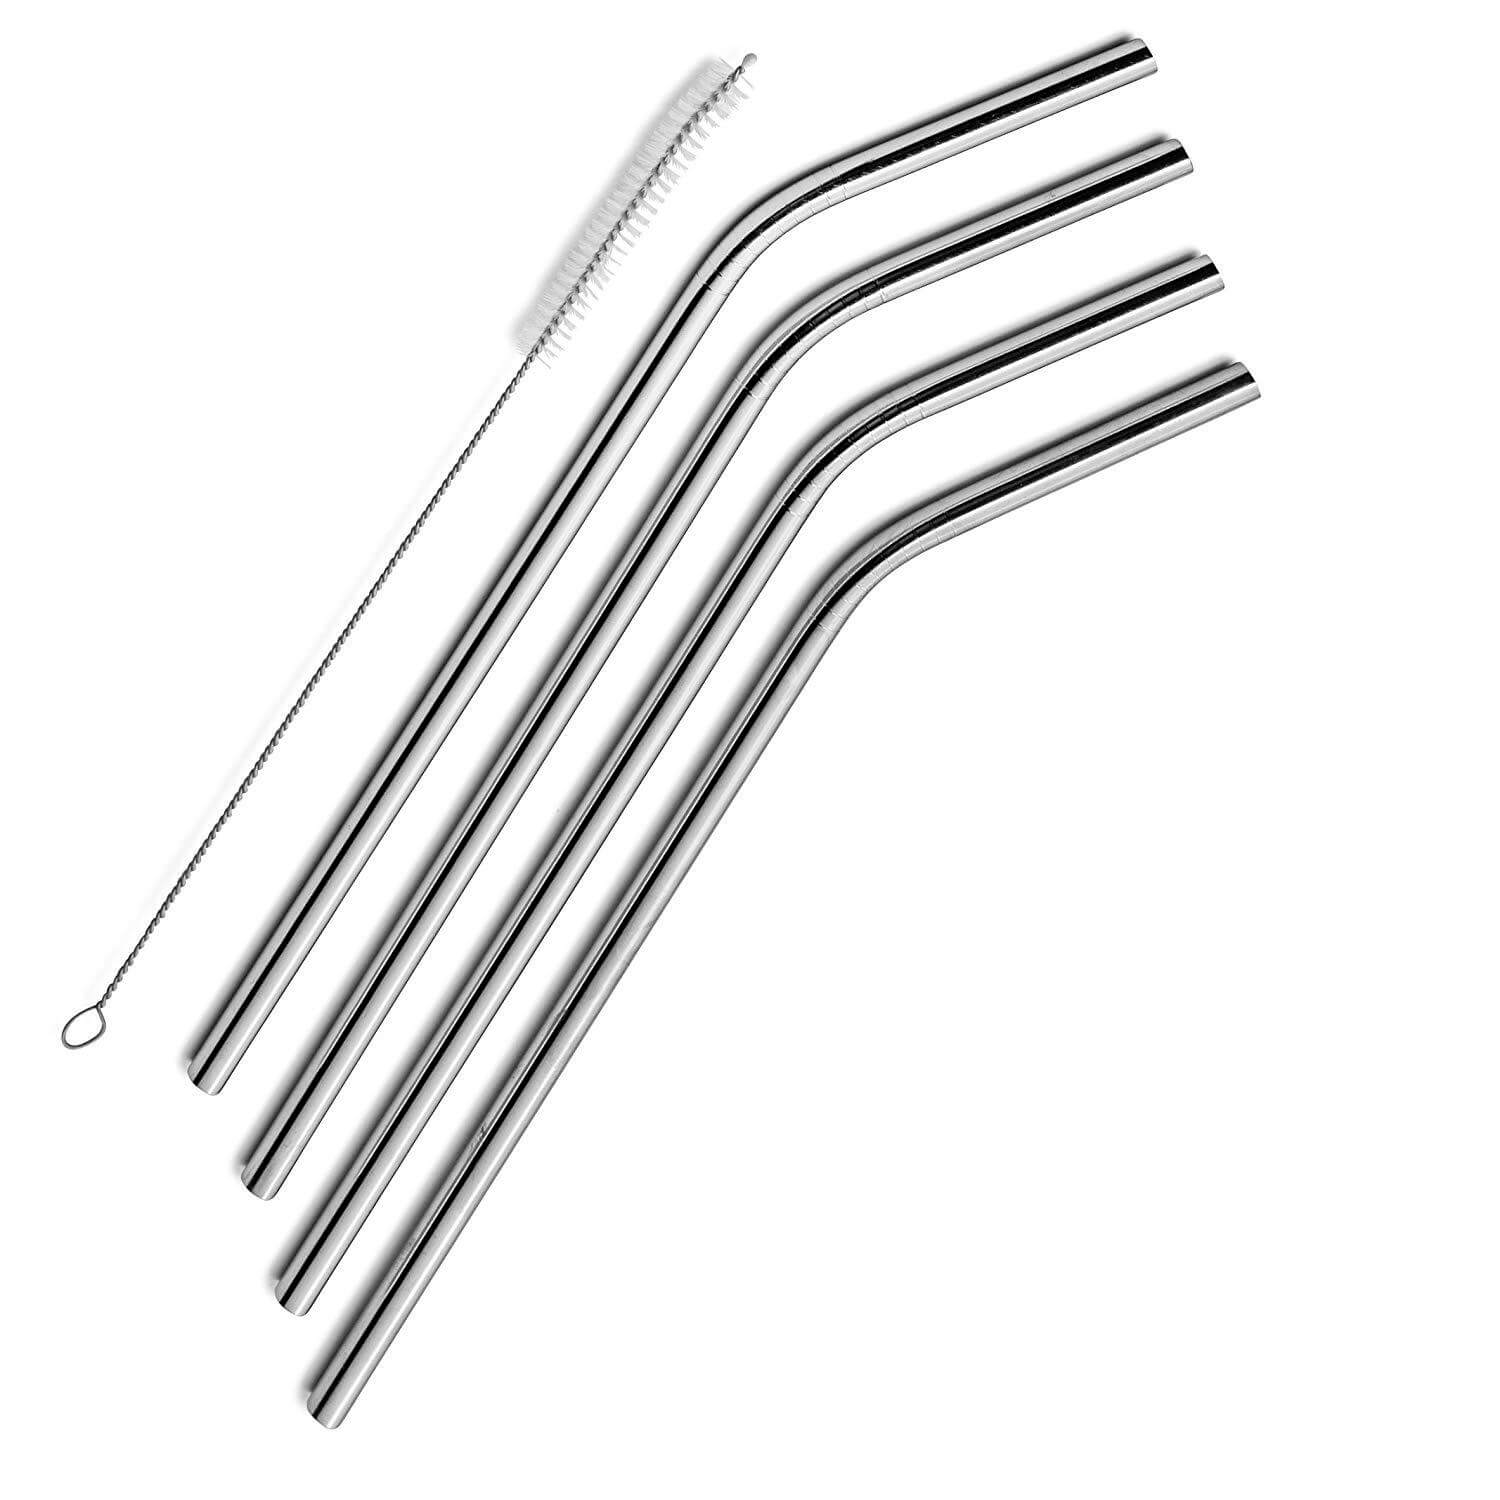 SB-SOUTHERN-EDITION-reusable-stainless-steel-straws